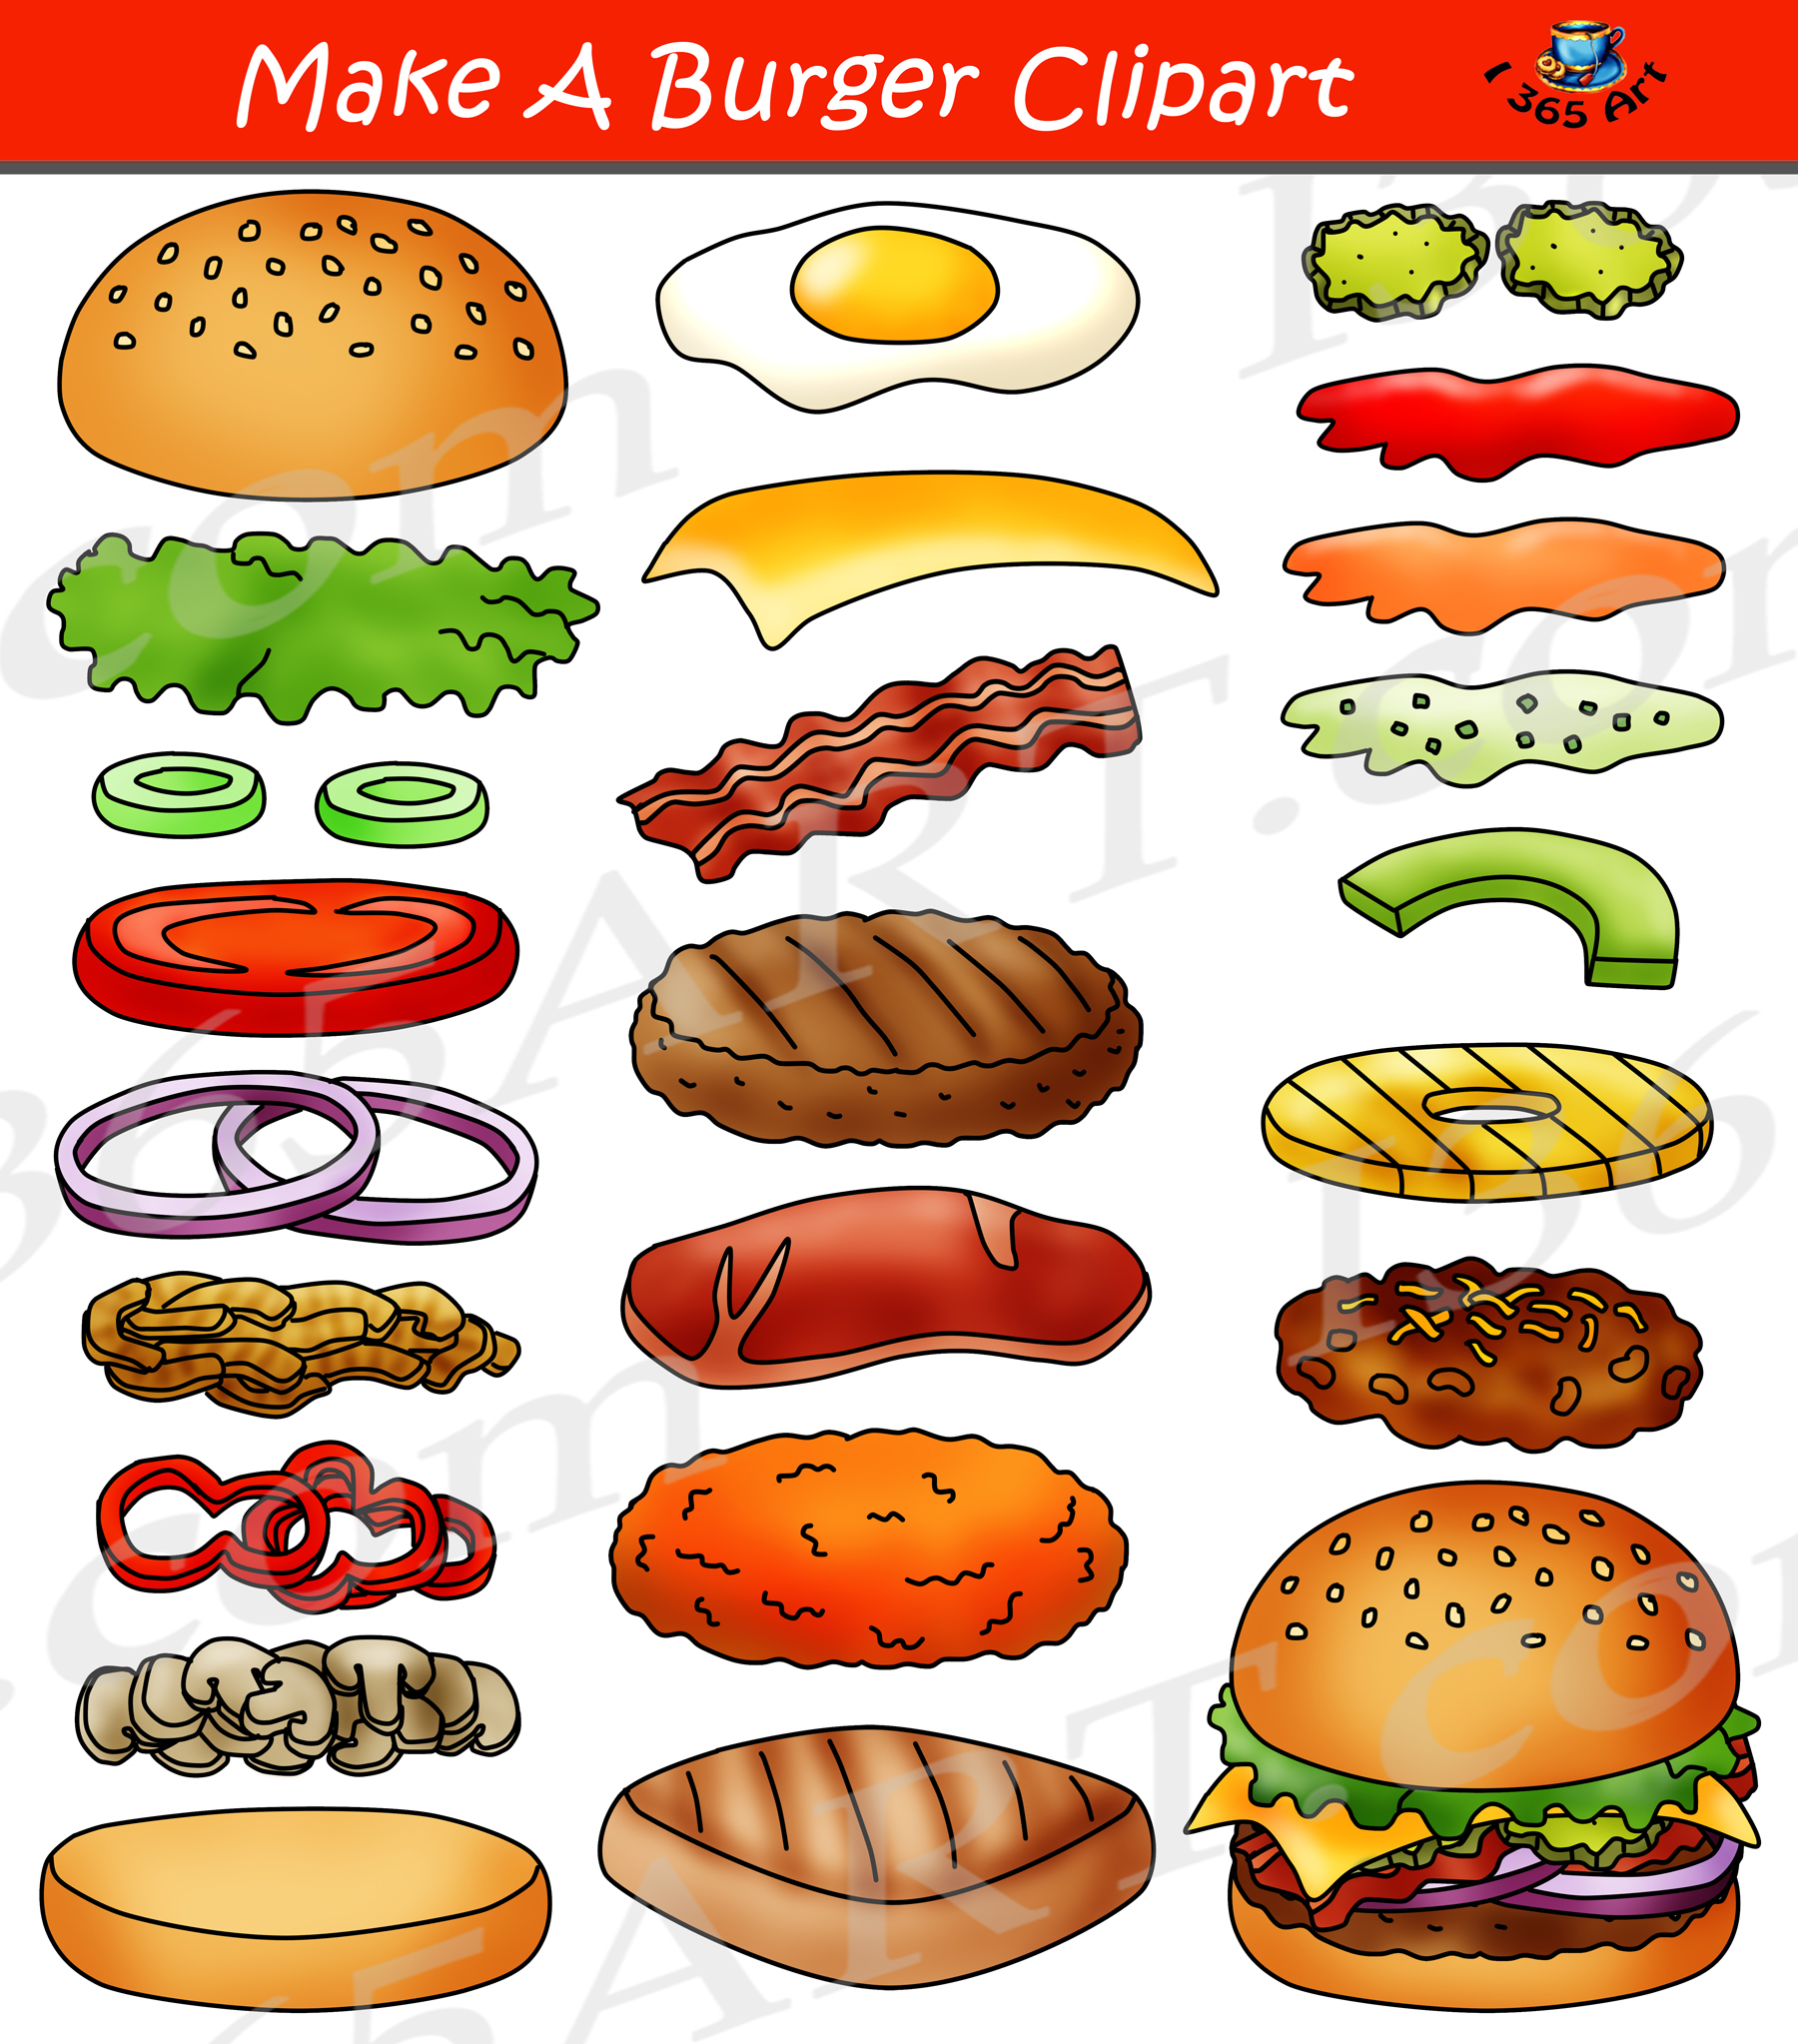 Build A Burger Clipart Hamburger Maker Bundle